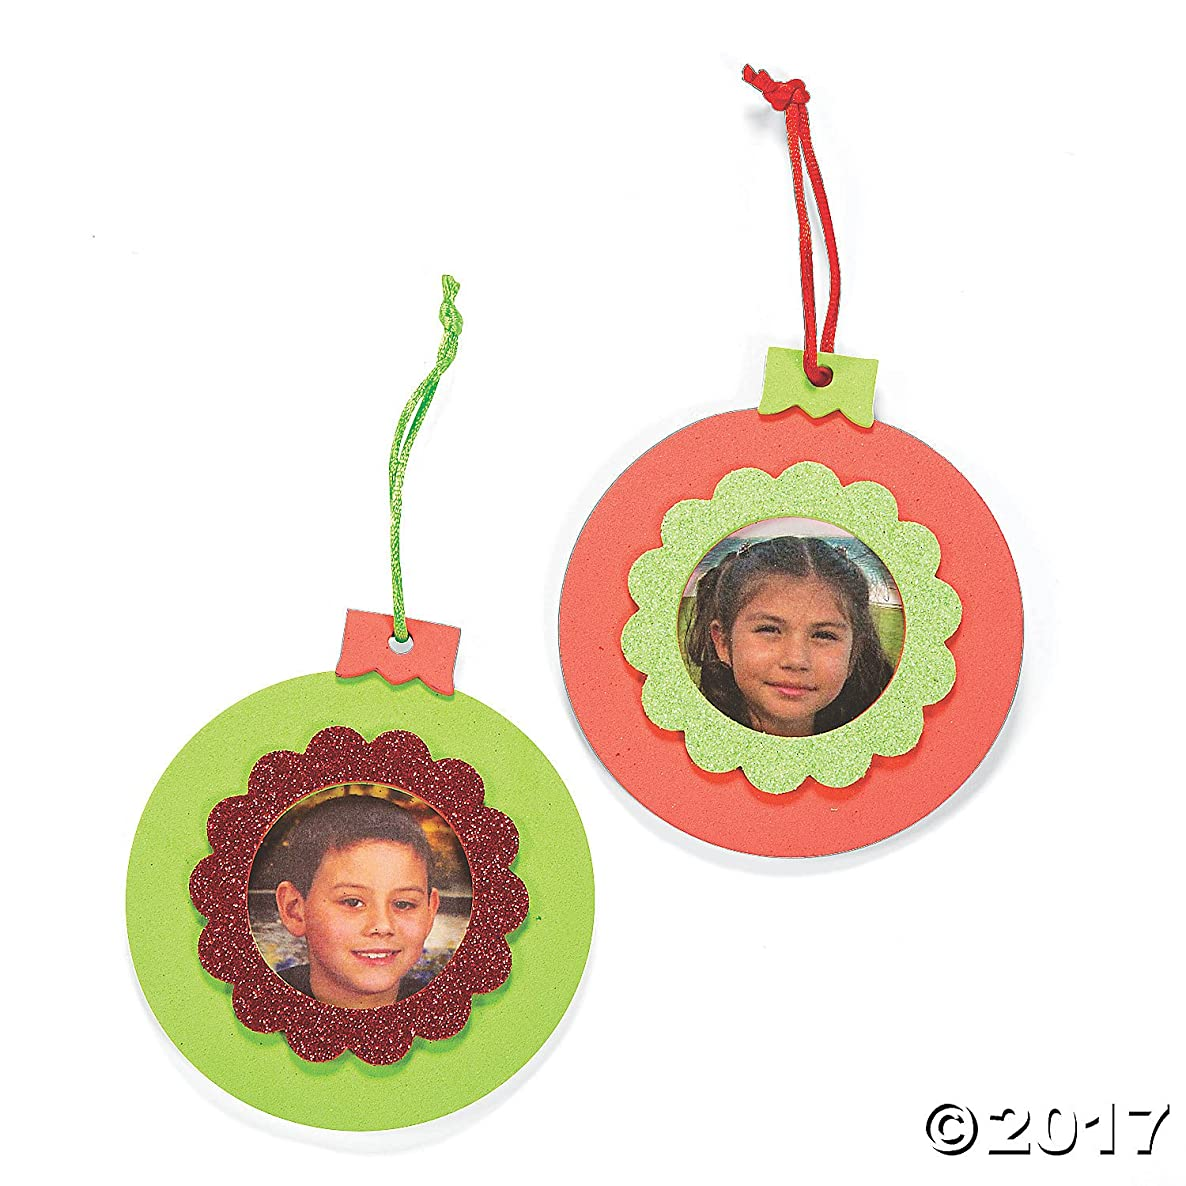 Foam Picture Photo Frame Ornament Craft Kit - Crafts for Kids  Ornament Crafts-makes 12